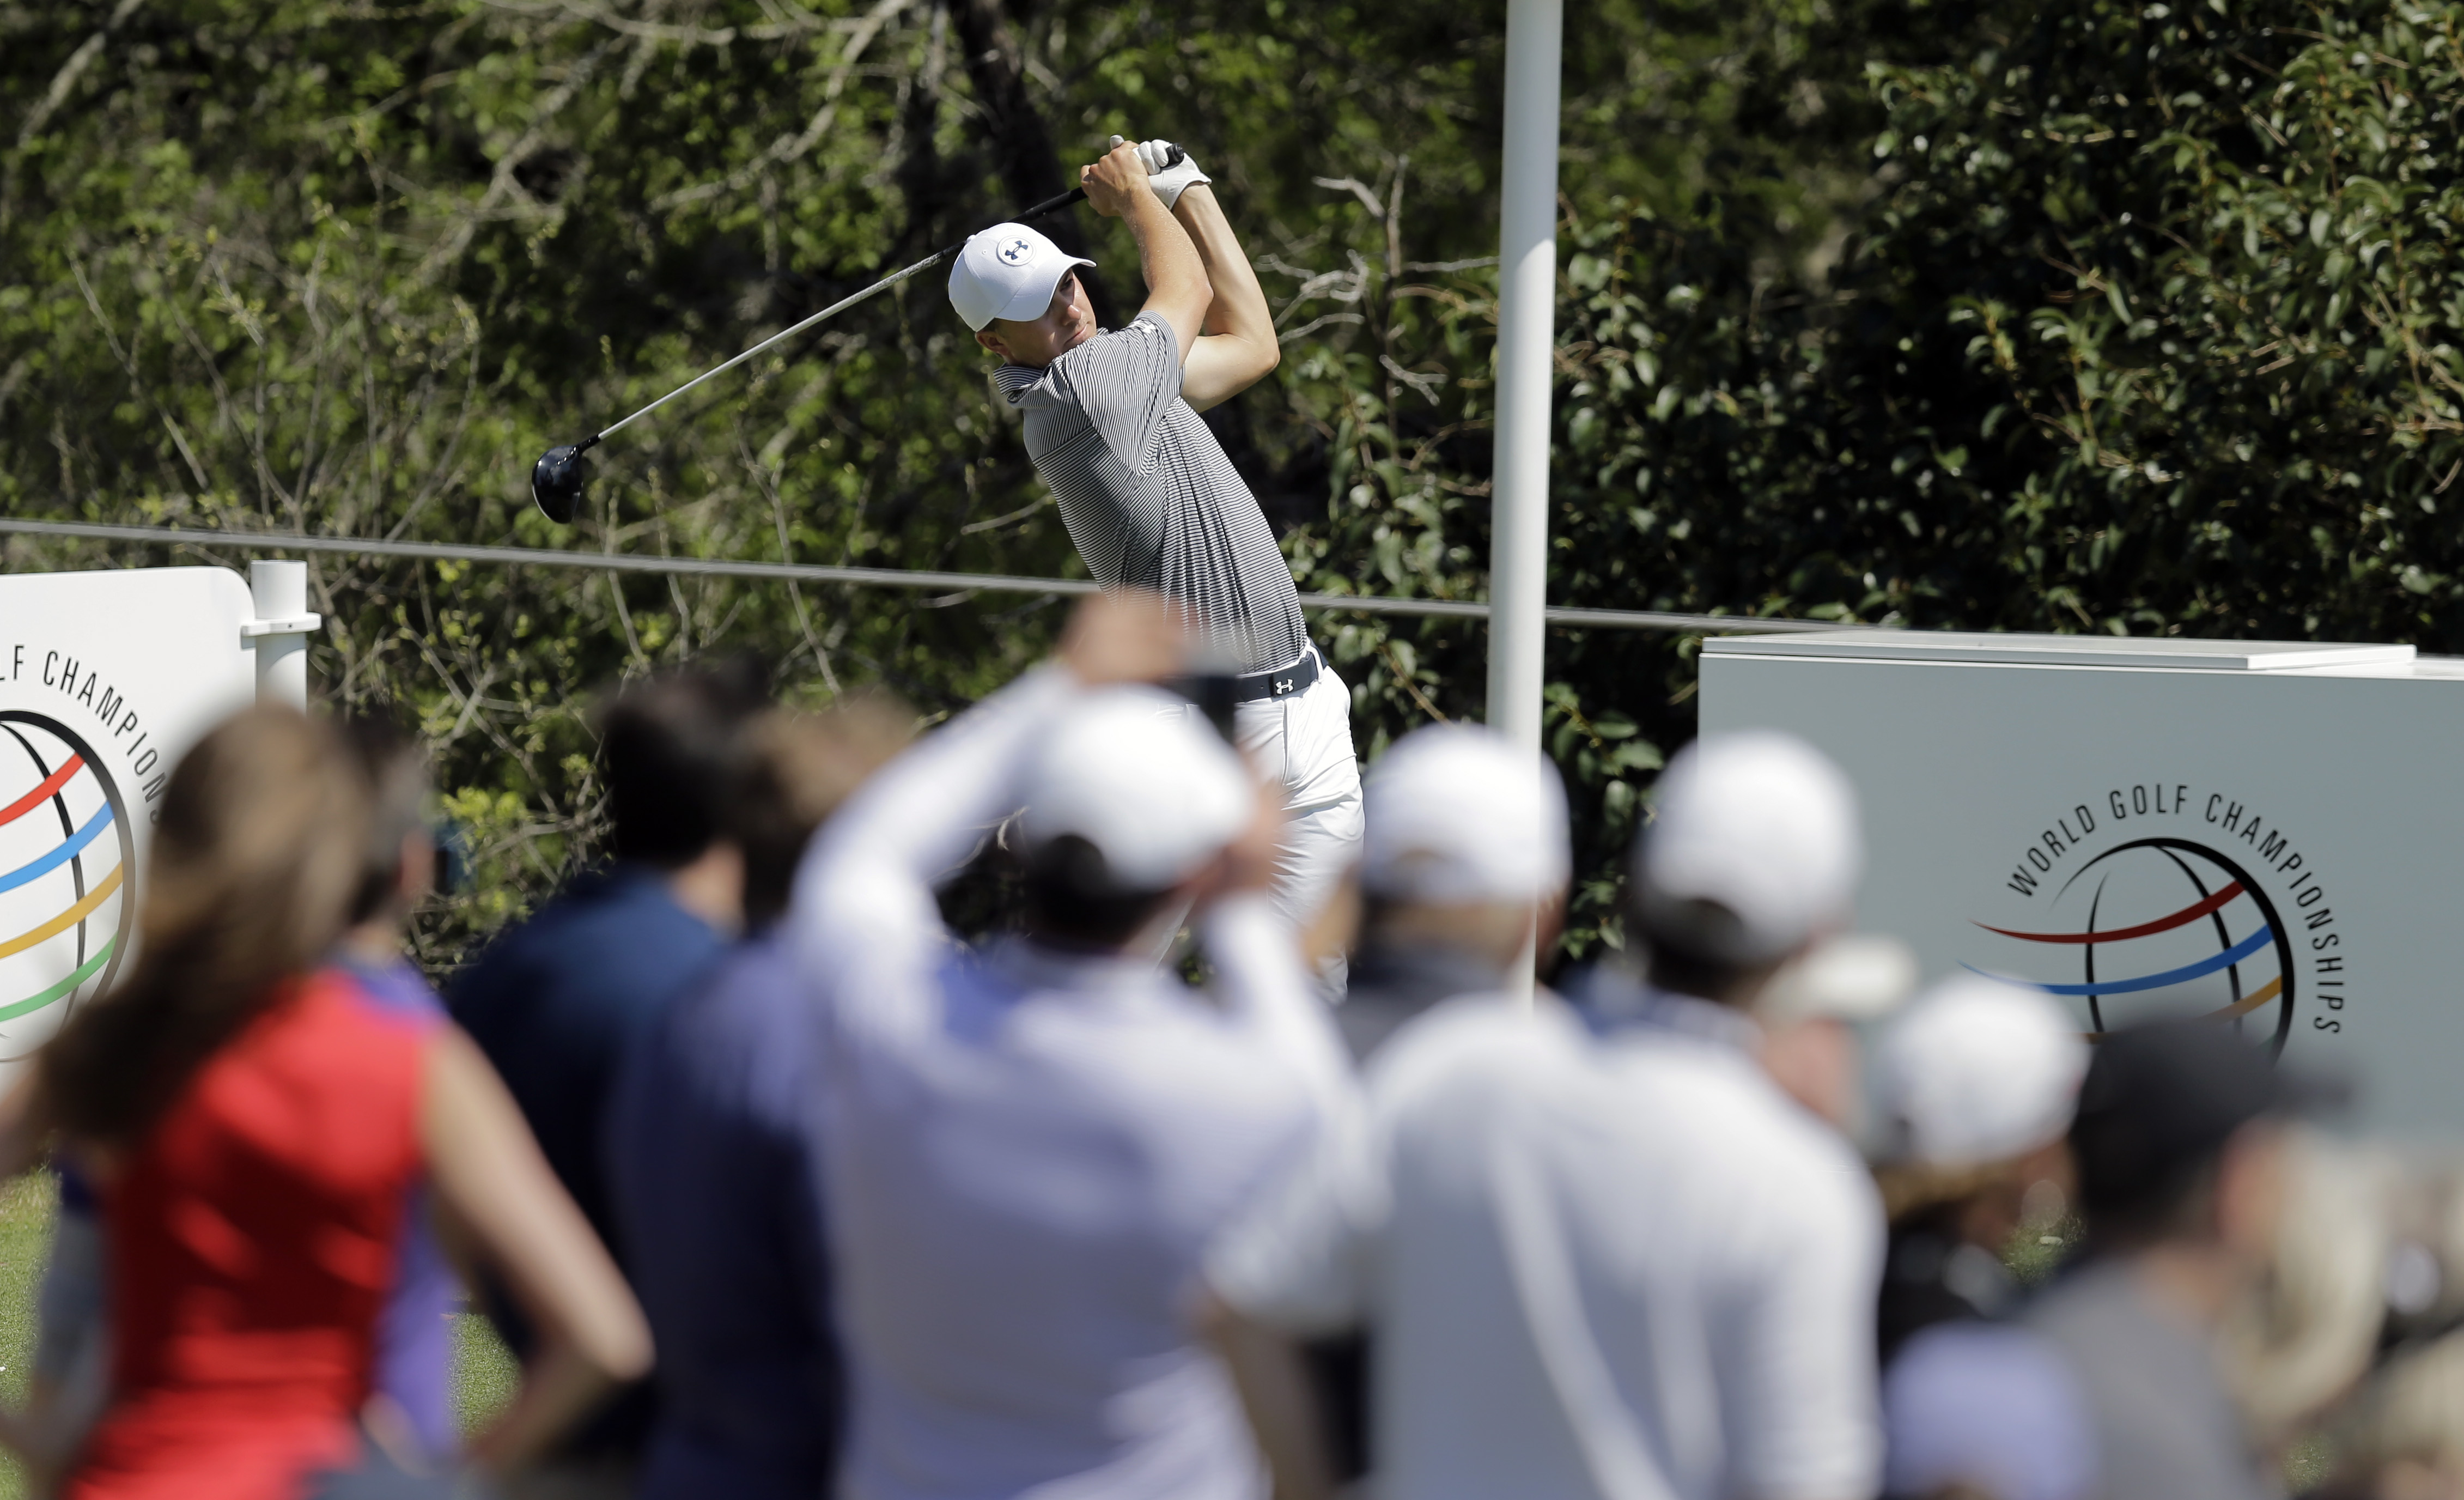 Top seed Jordan Spieth watches his tee shot on the 2nd hole during practice for the Dell Match Play Championship golf tournament at Austin County Club, Tuesday, March 22, 2016, in Austin, Texas. (AP Photo/Eric Gay)